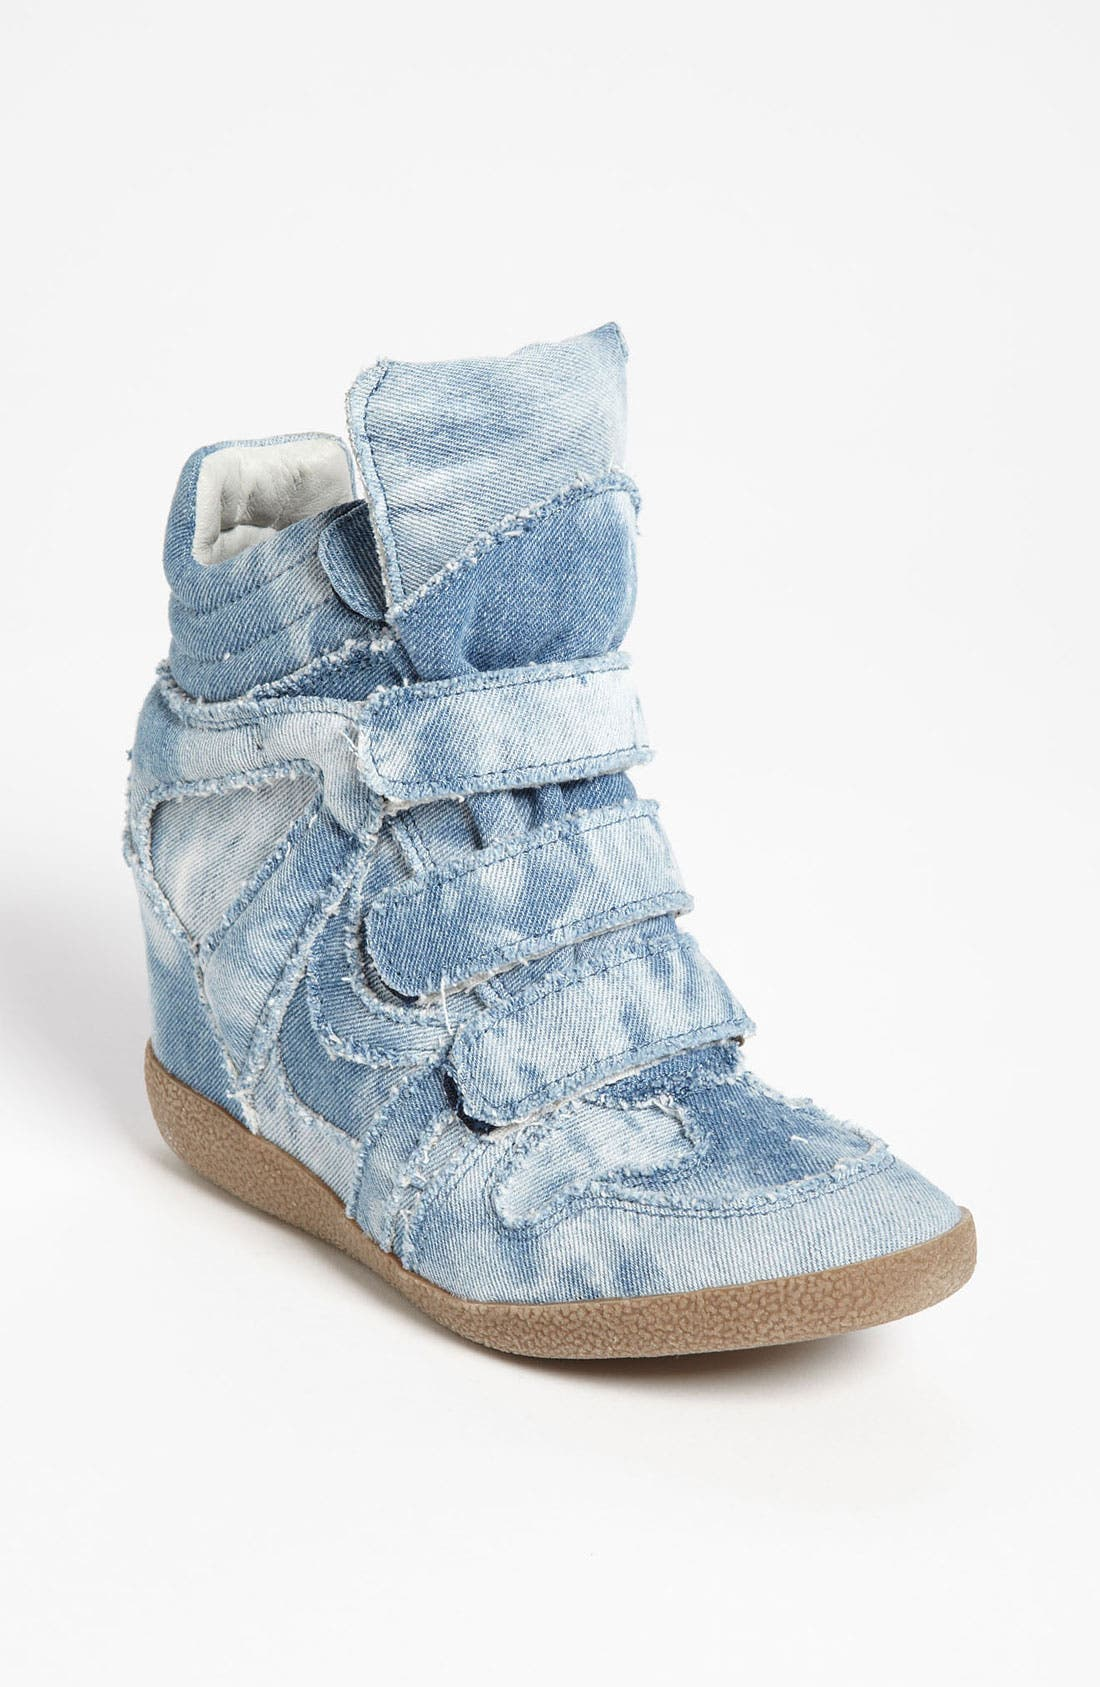 'Hilite-C' Wedge Sneaker,                             Main thumbnail 1, color,                             Denim